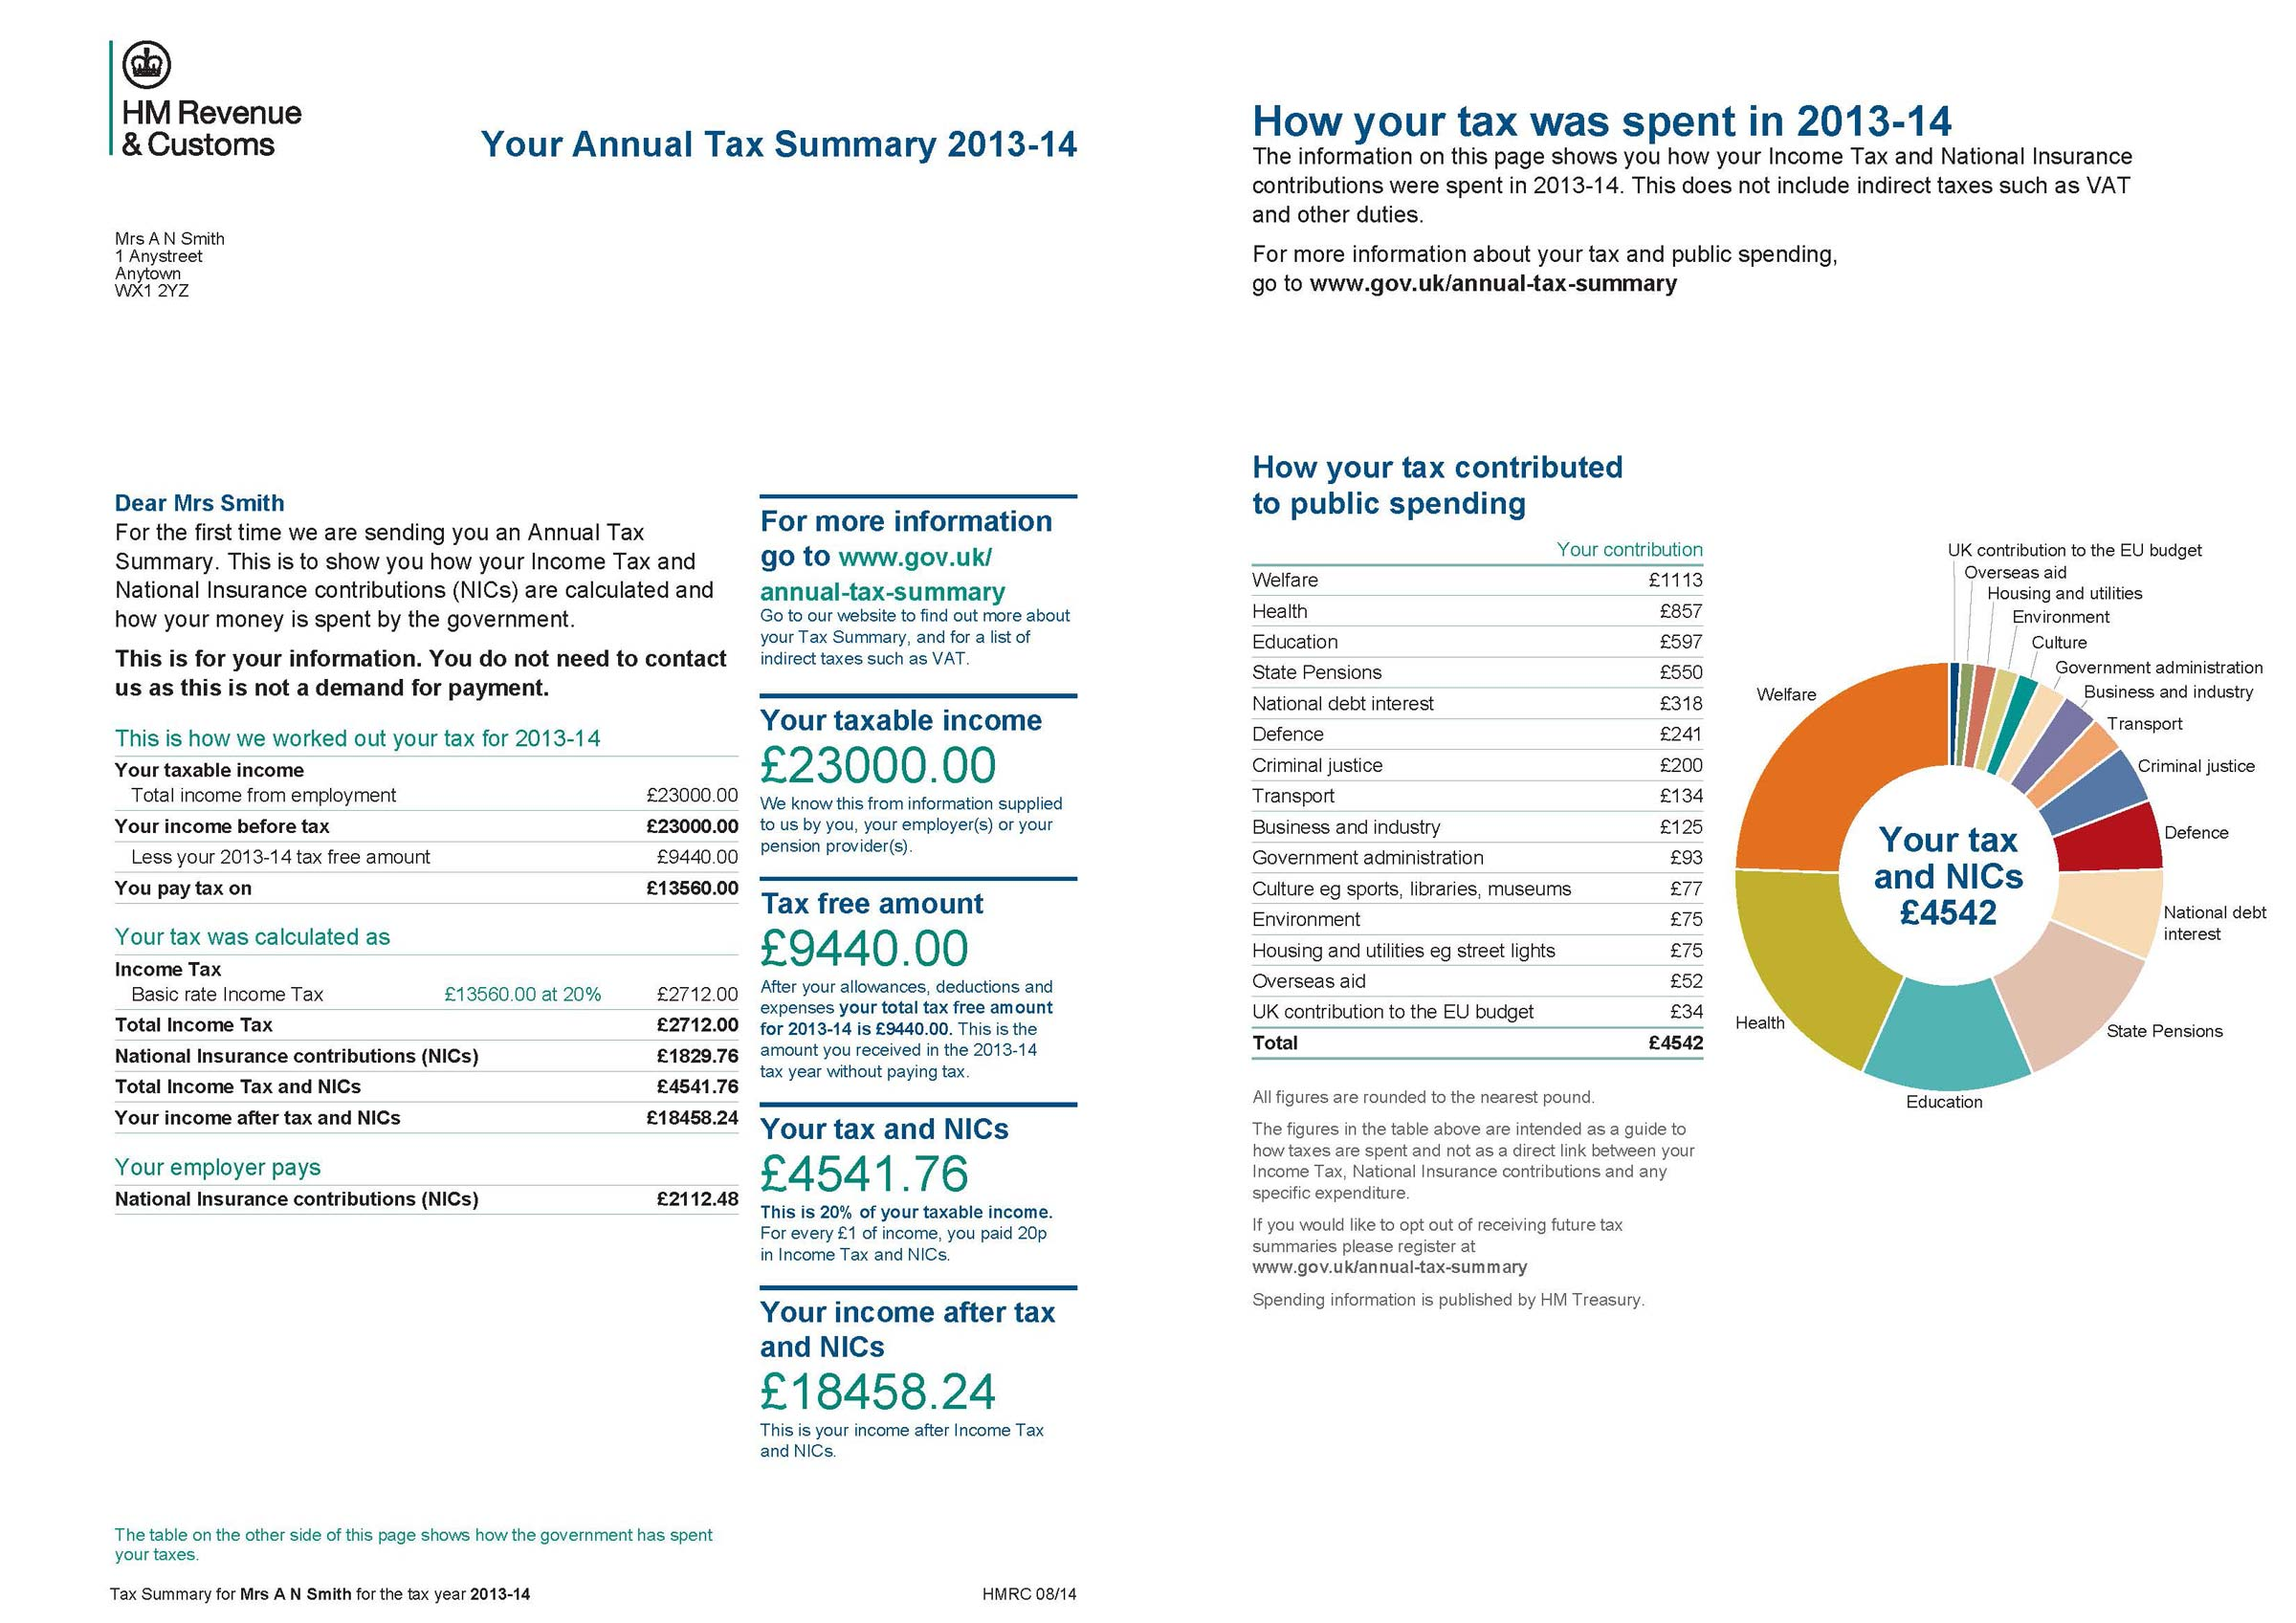 image of the Annual Tax Summary